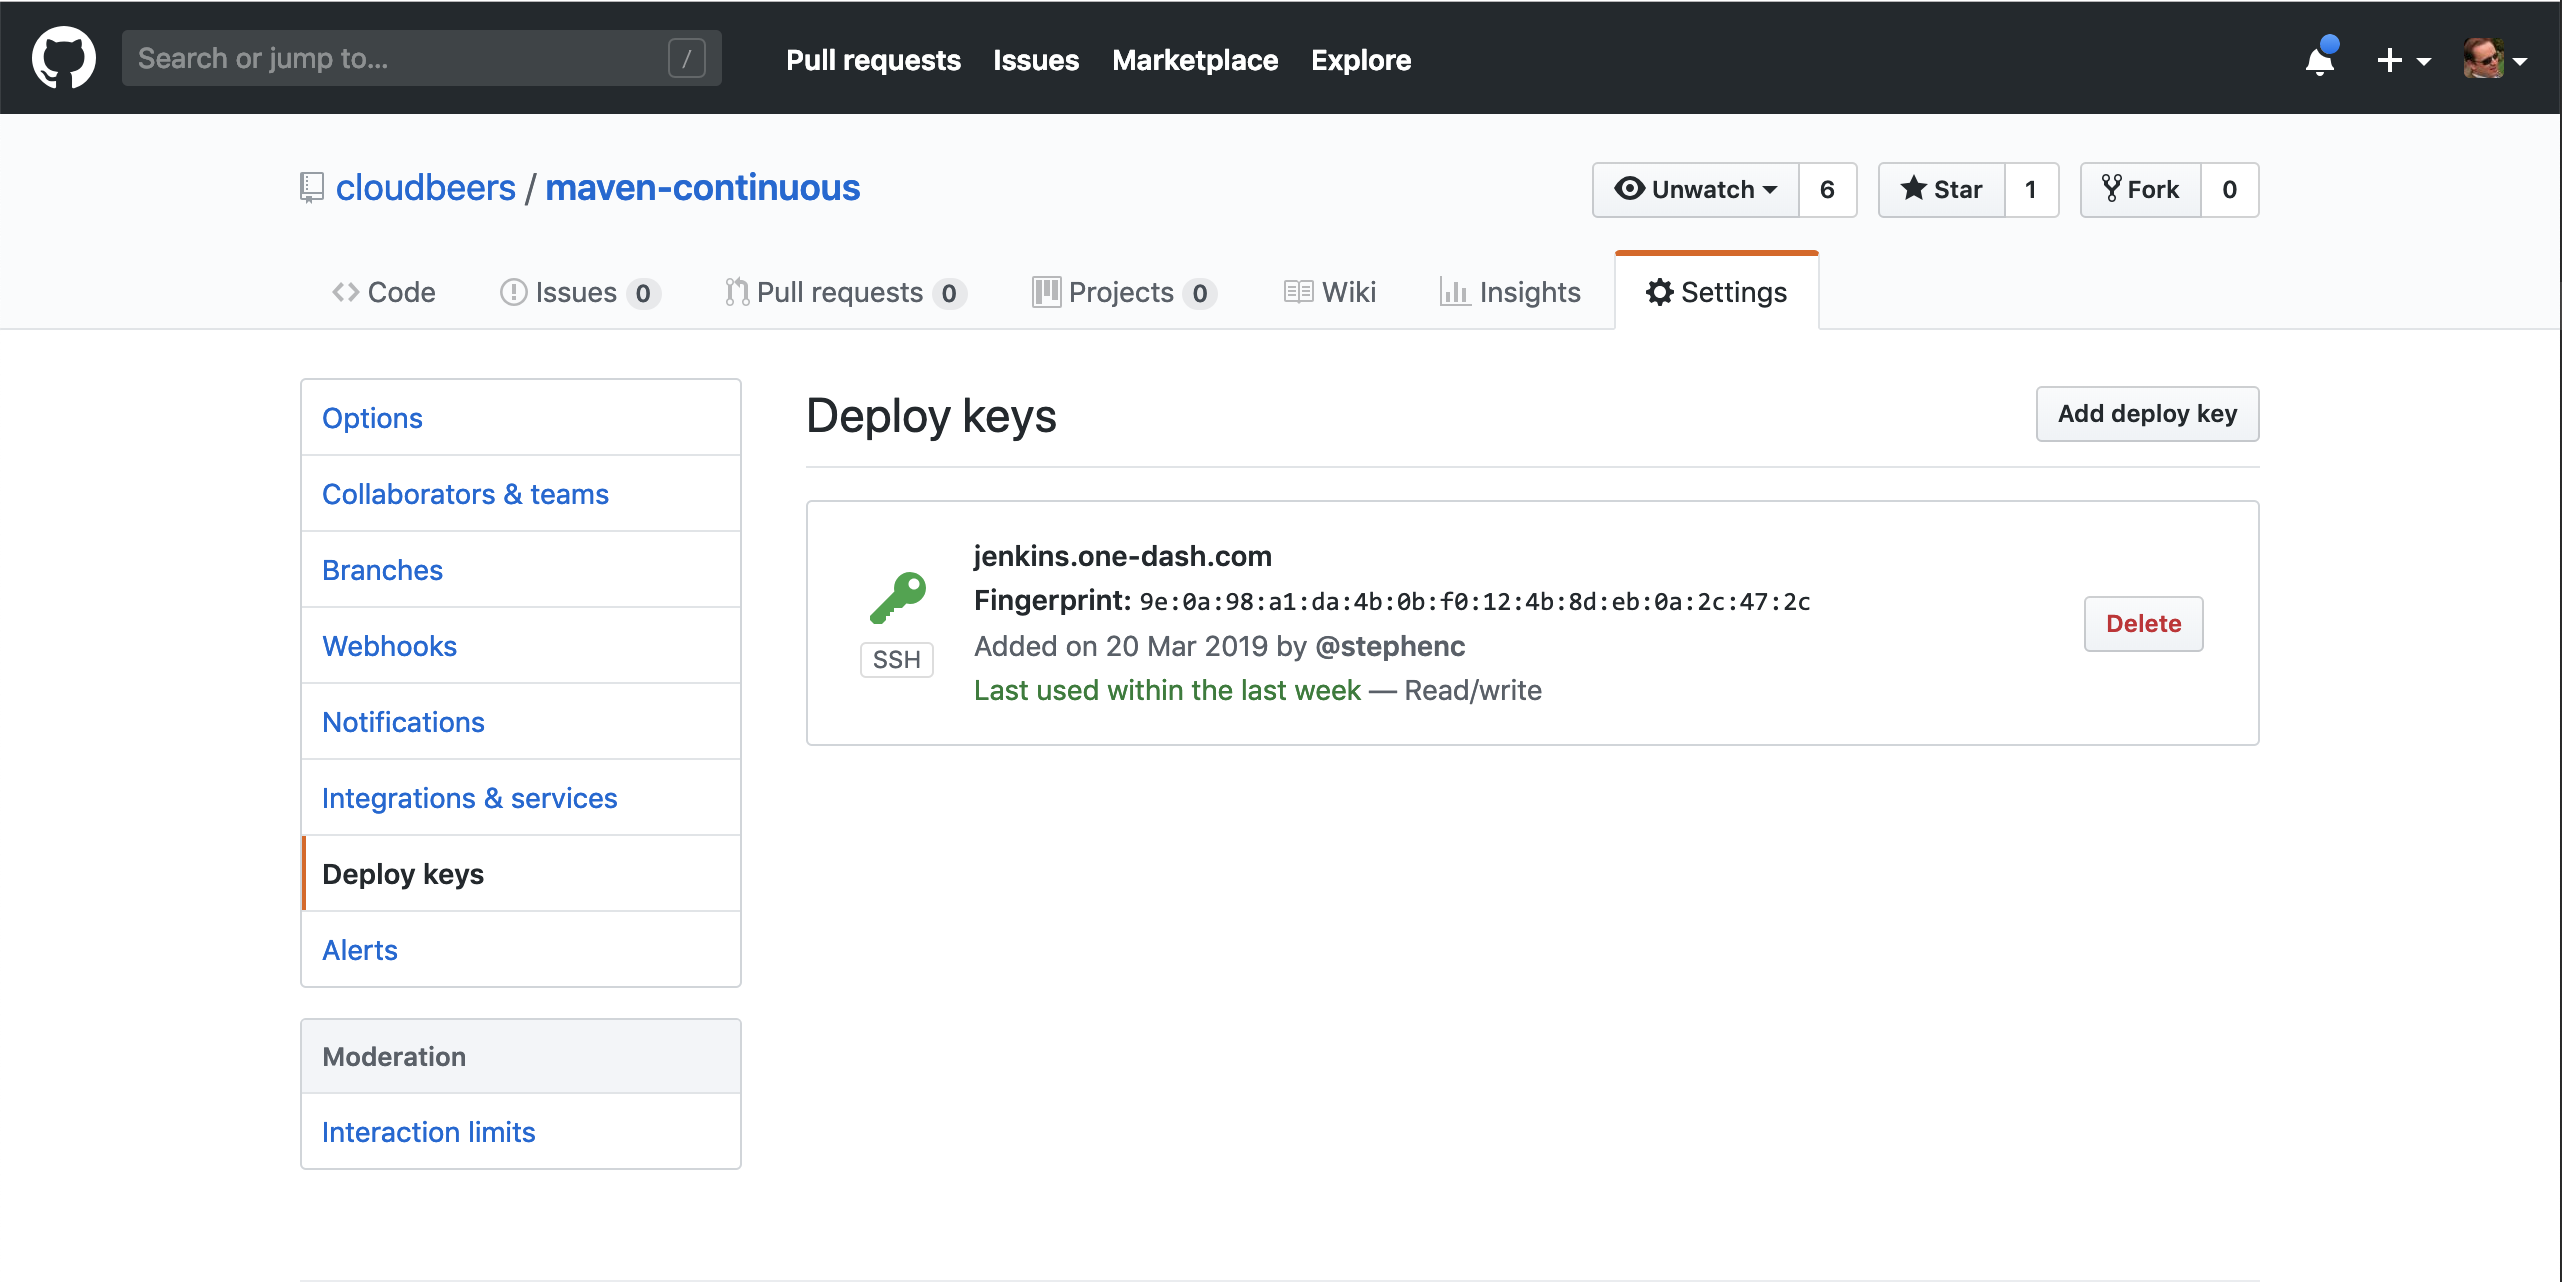 A deploy key configured in the GitHub repository